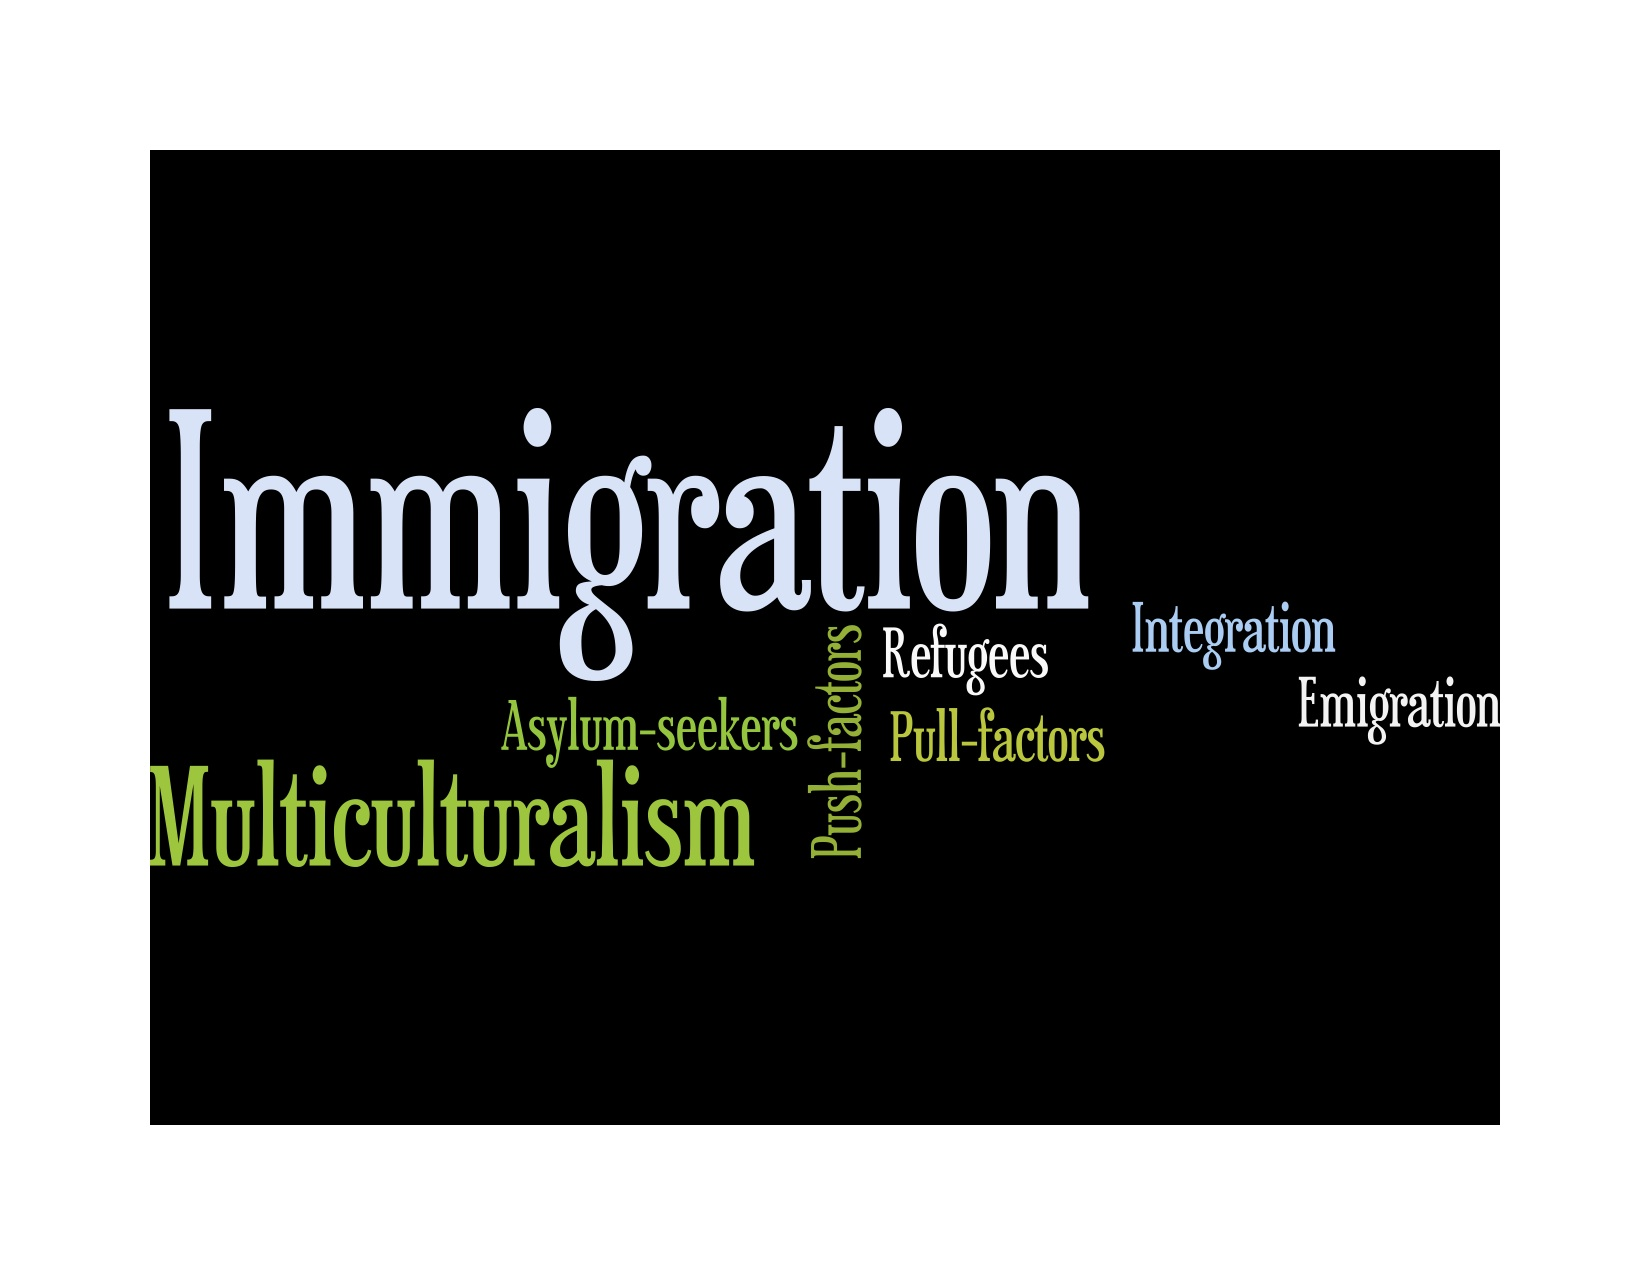 010 Conclusion On Immigration Essay Immigration20wordle Fearsome Full